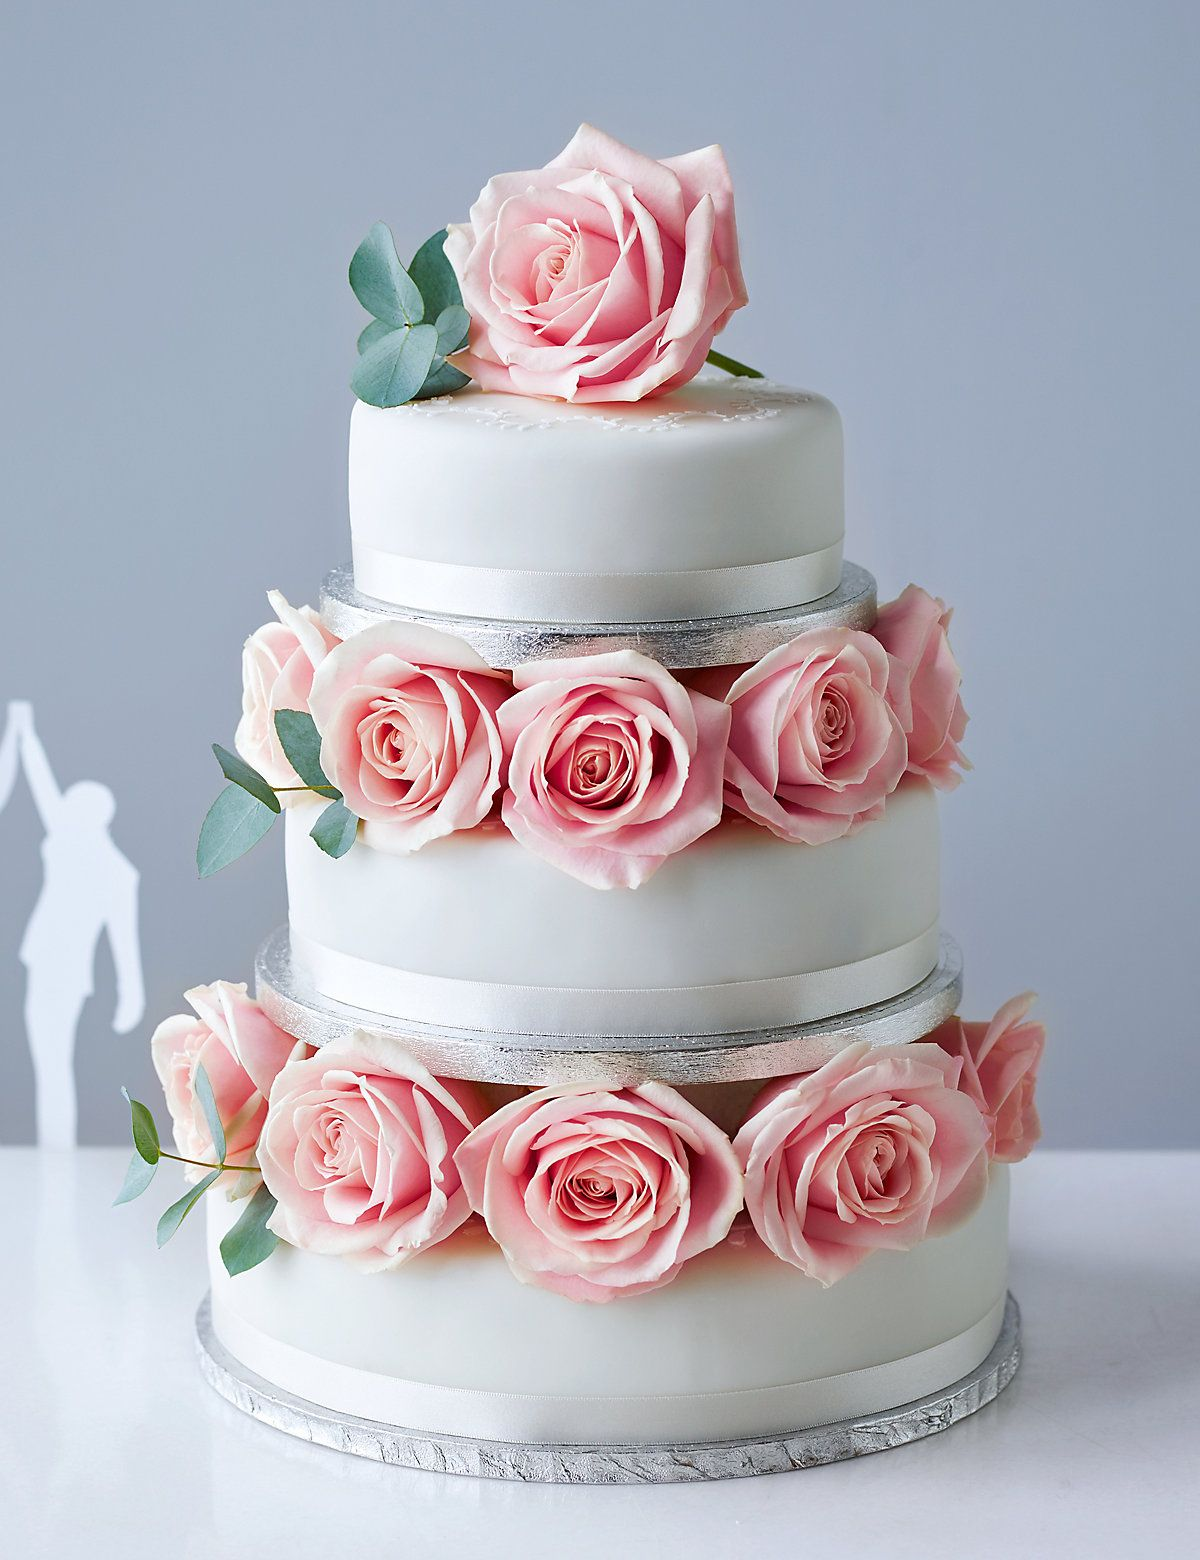 Build Your Own Traditional Wedding Cake - Fruit, Sponge or Chocolate ...